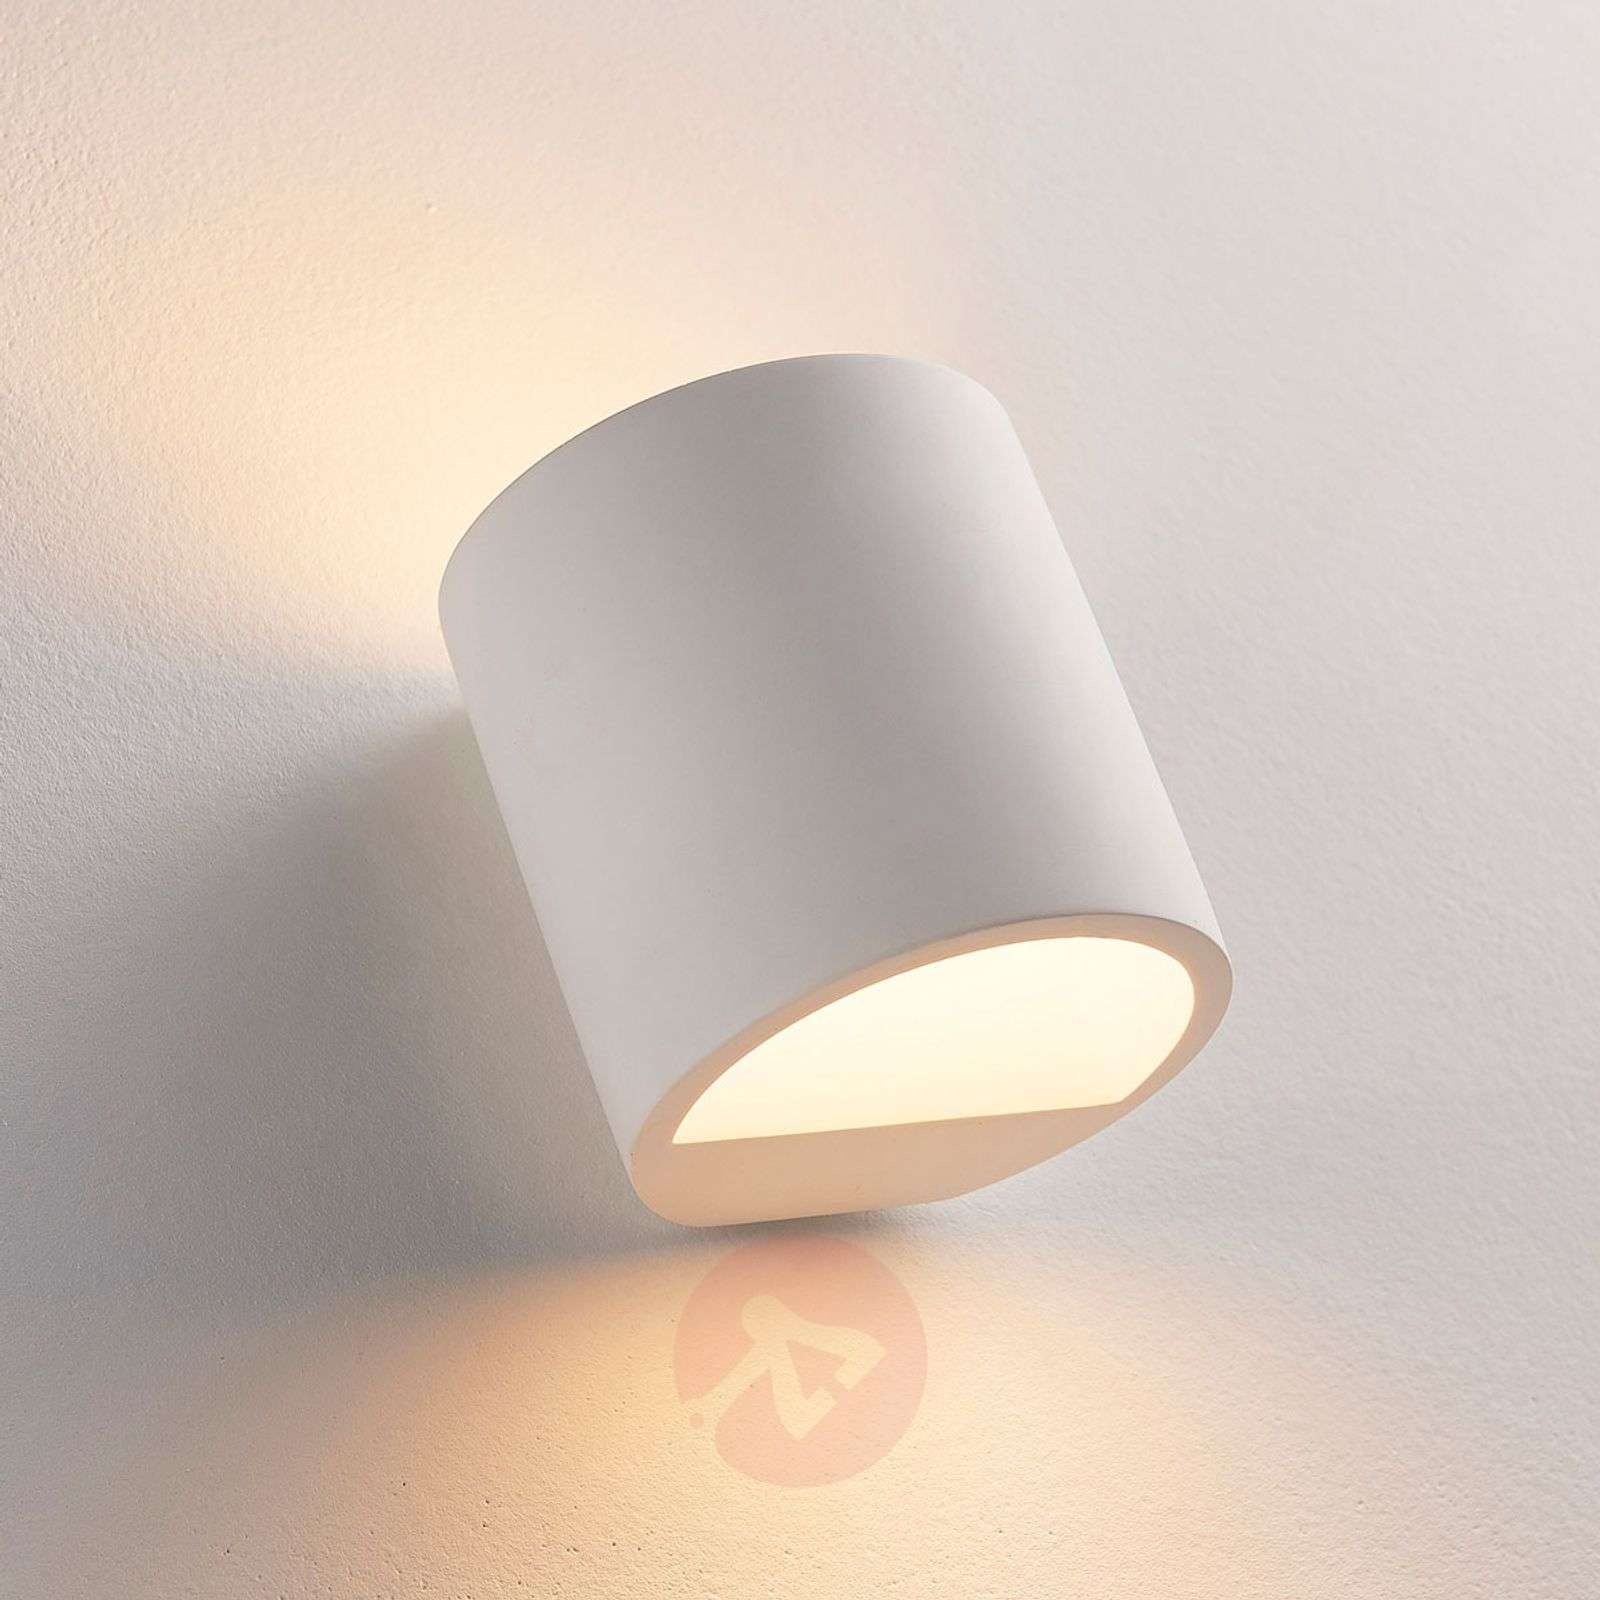 Plaster wall light Krista with G9 LED bulb-9621346-02